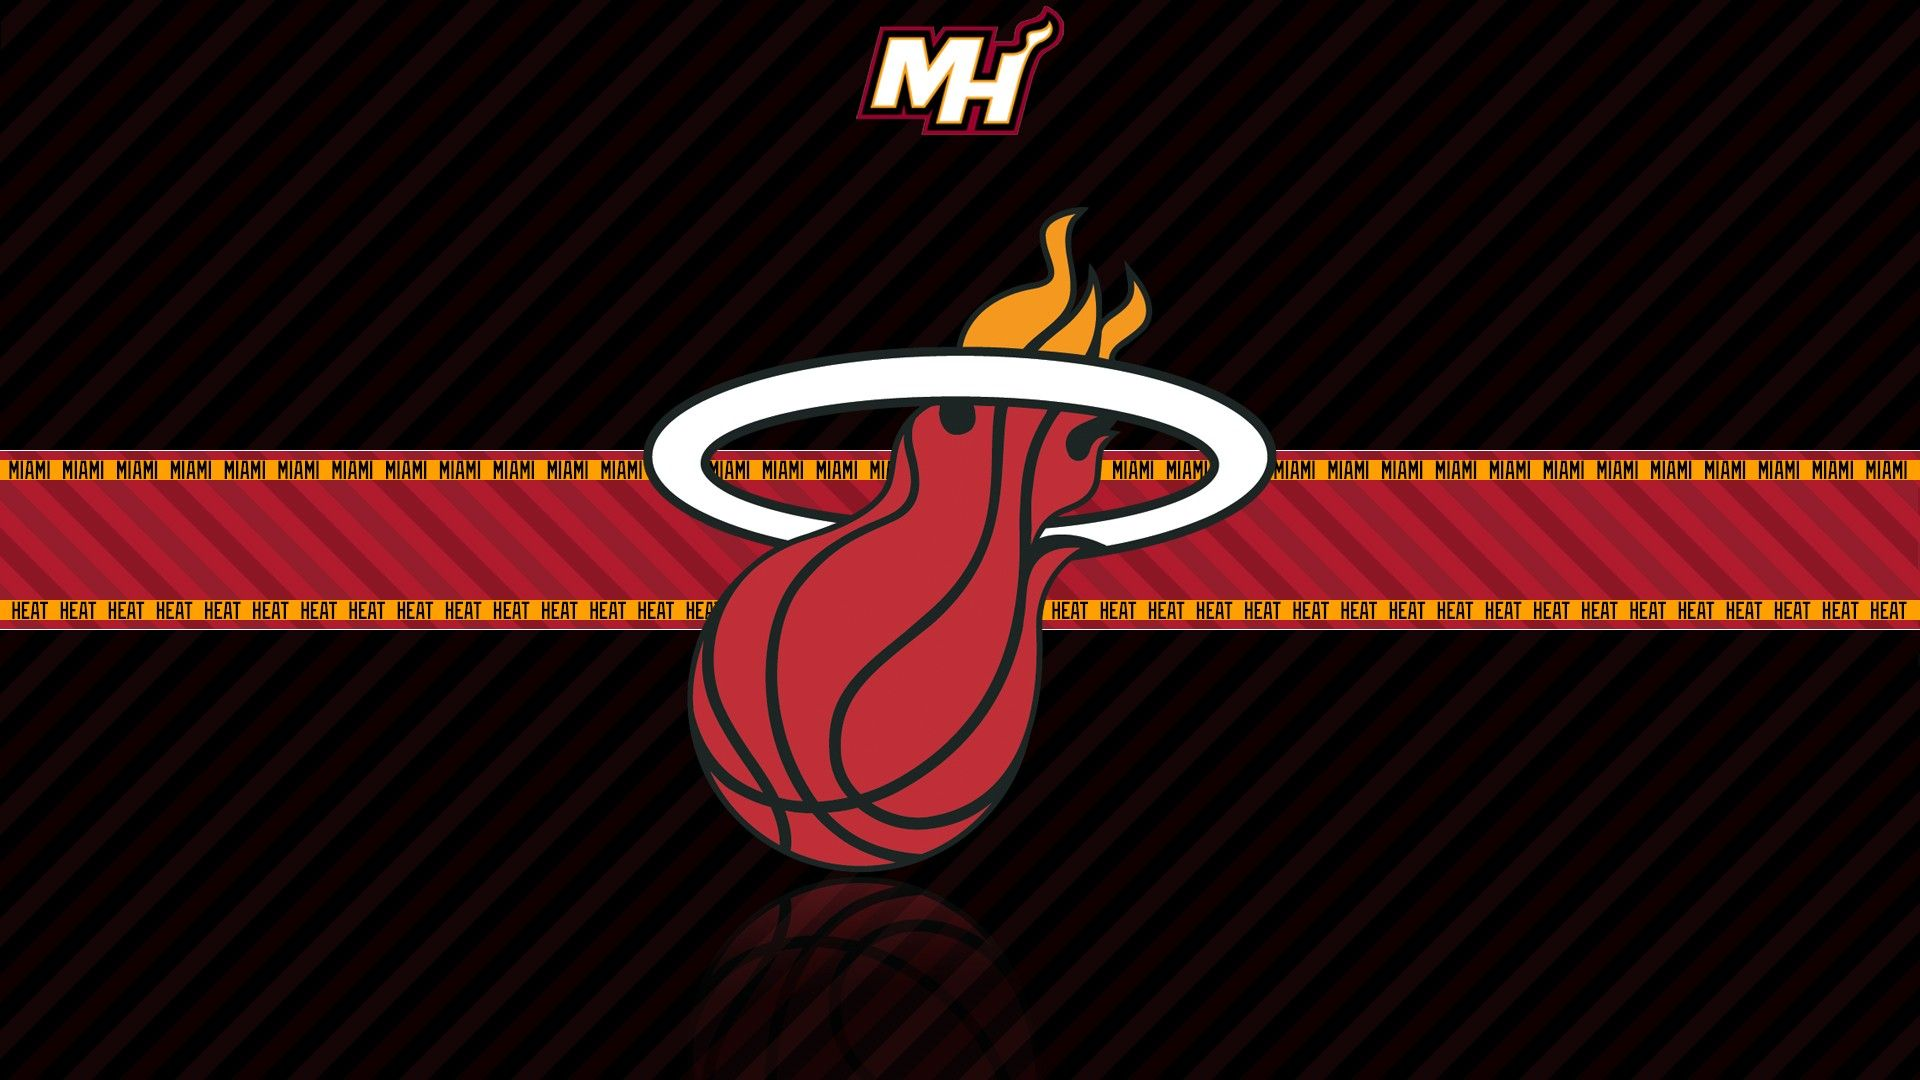 Miami heat hd wallpapers backgrounds wallpaper art wallpapers miami heat hd wallpapers backgrounds wallpaper voltagebd Choice Image